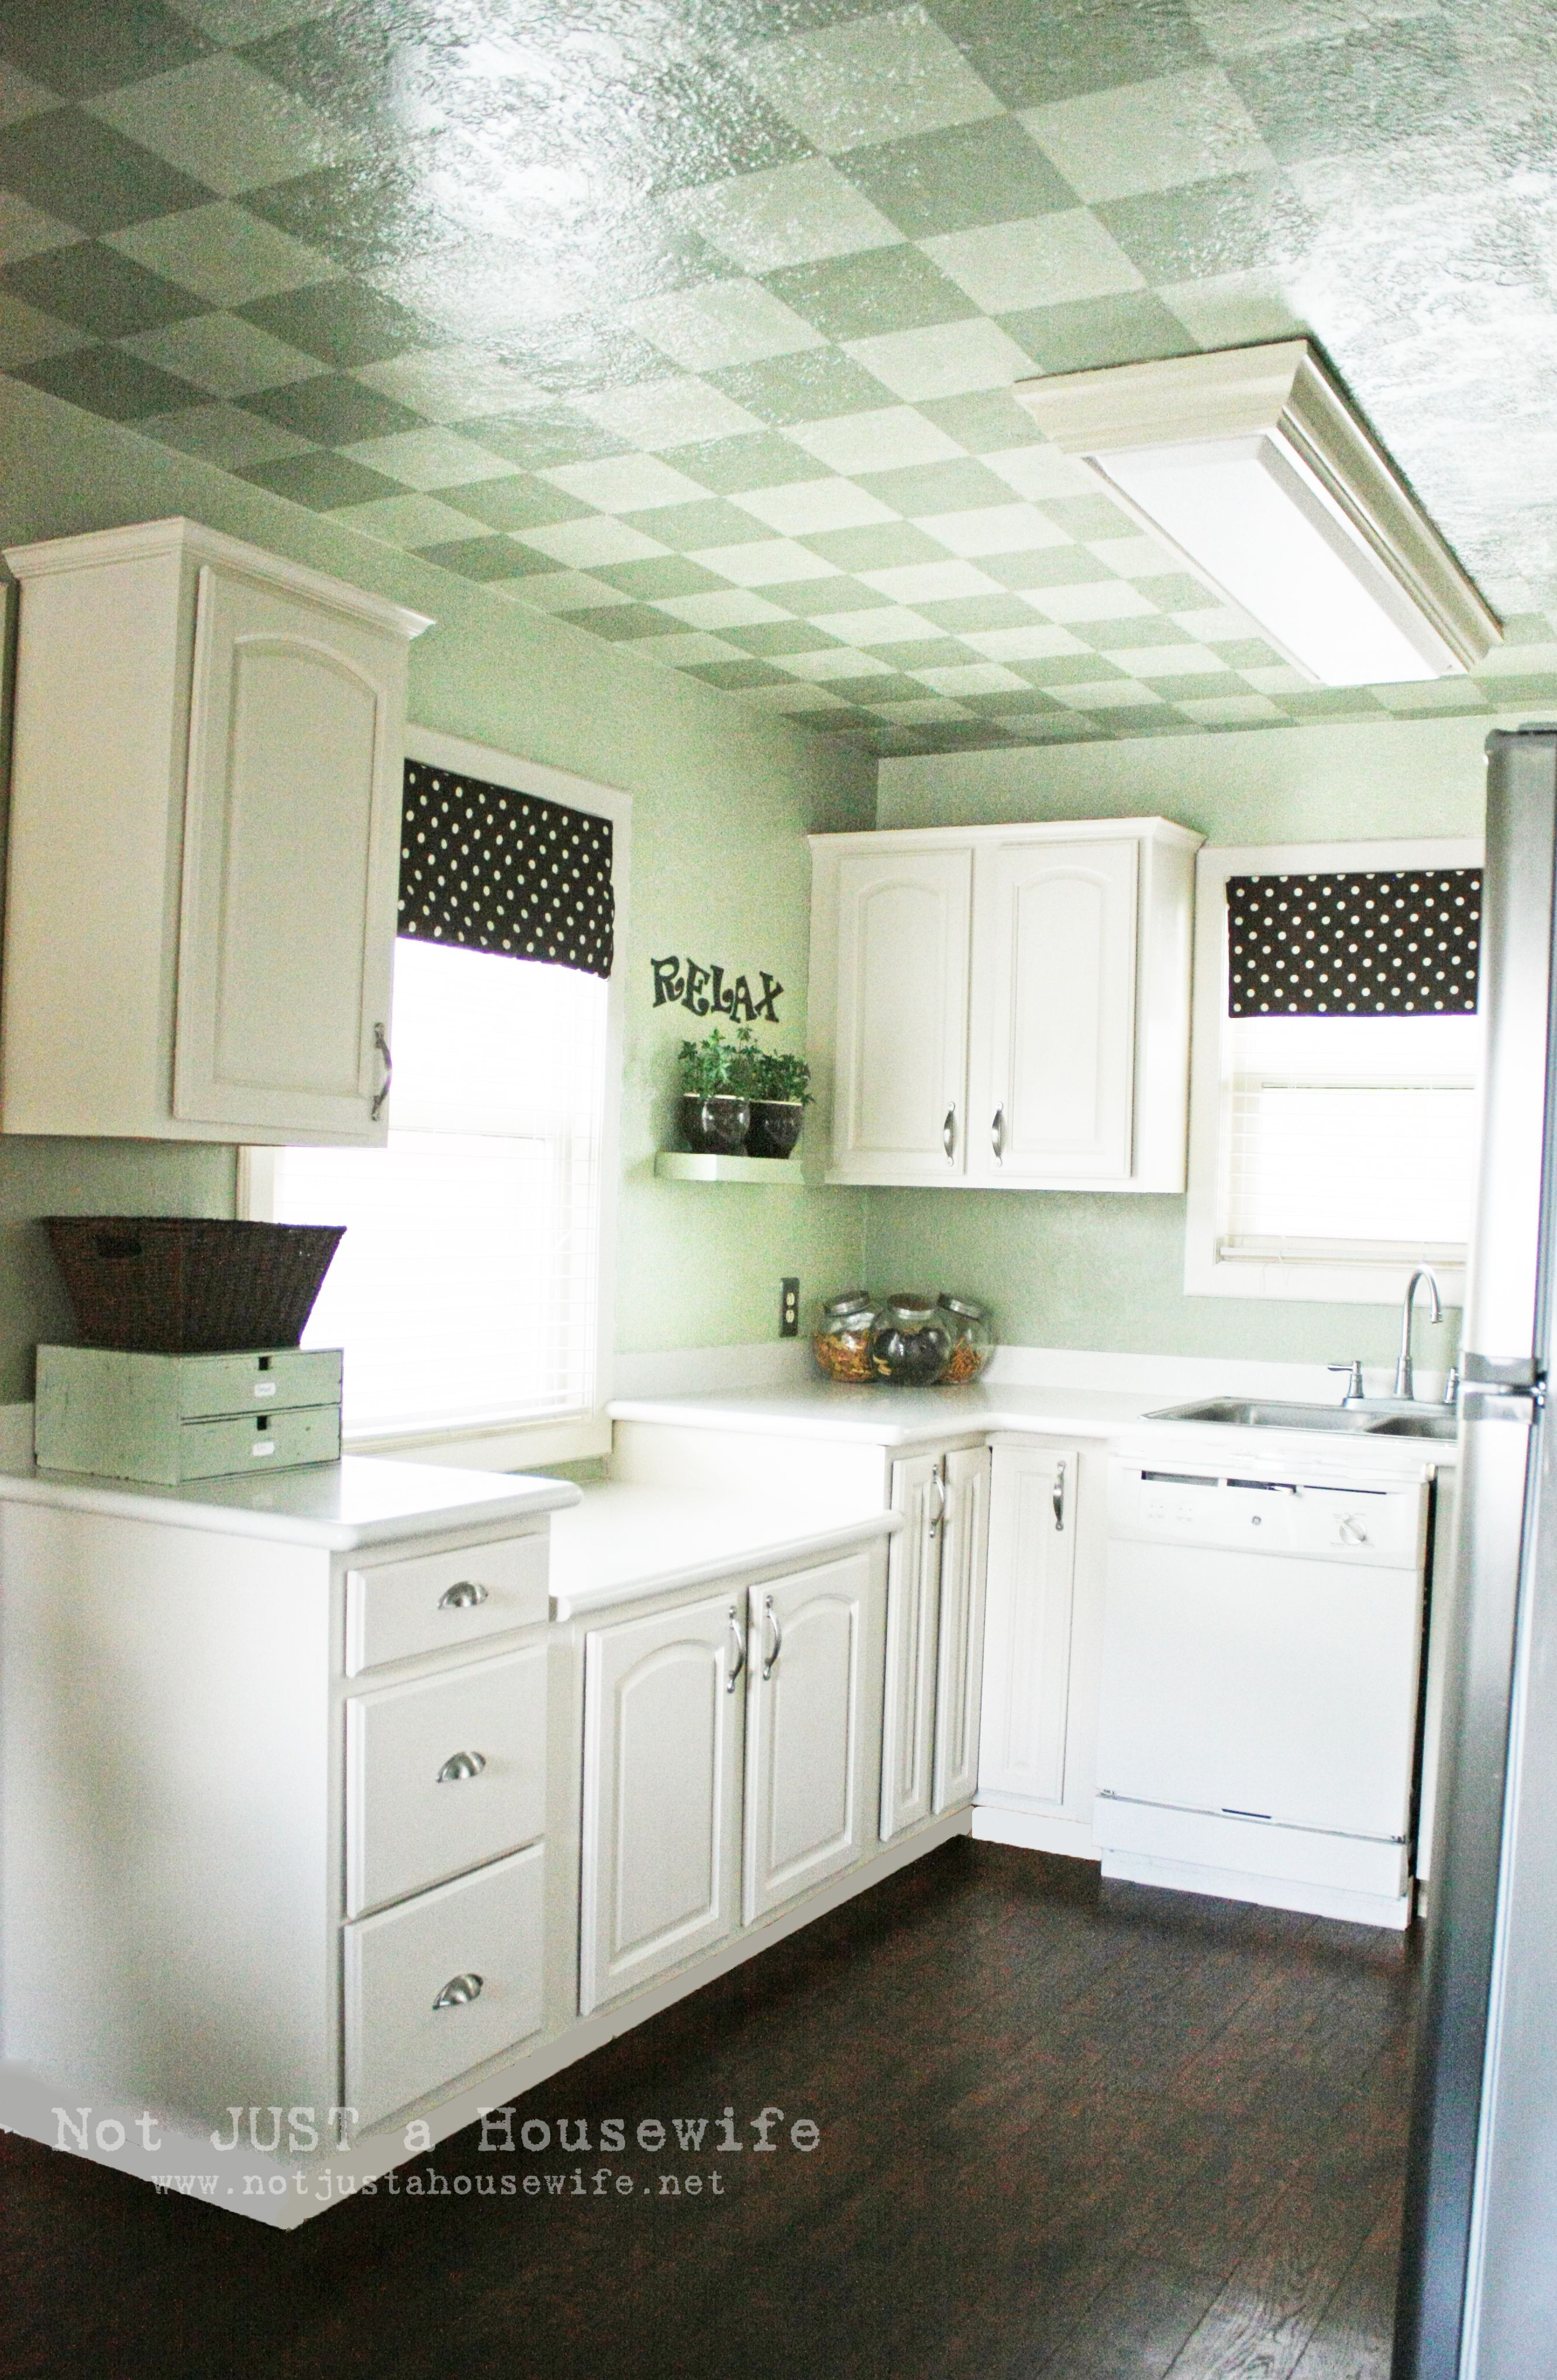 painted kitchen floors choice image - home fixtures decoration ideas